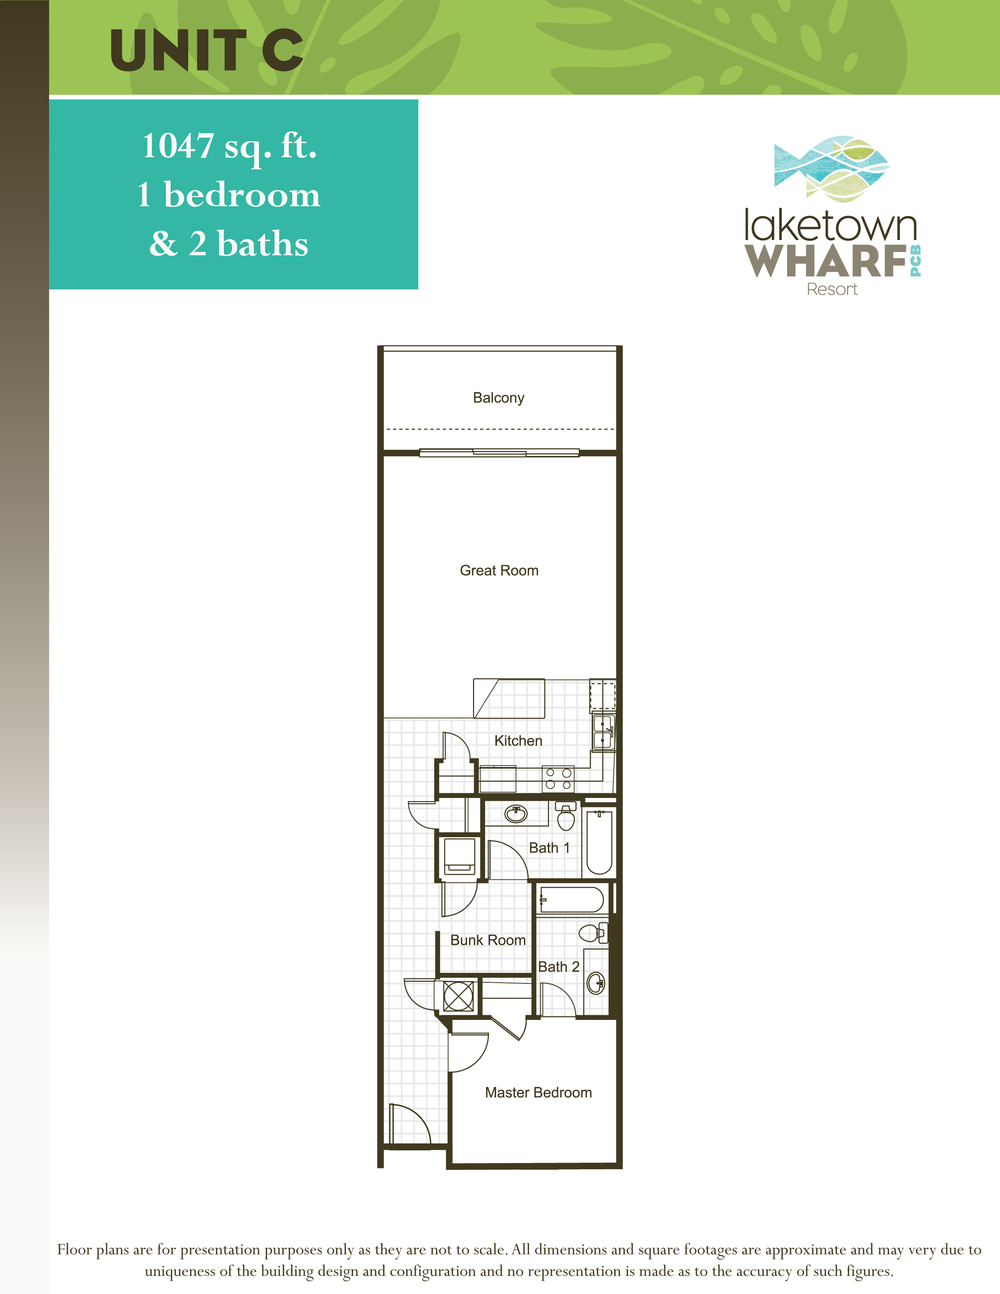 LTW+Unit+C+Floor+Plan+Edited-01.jpg